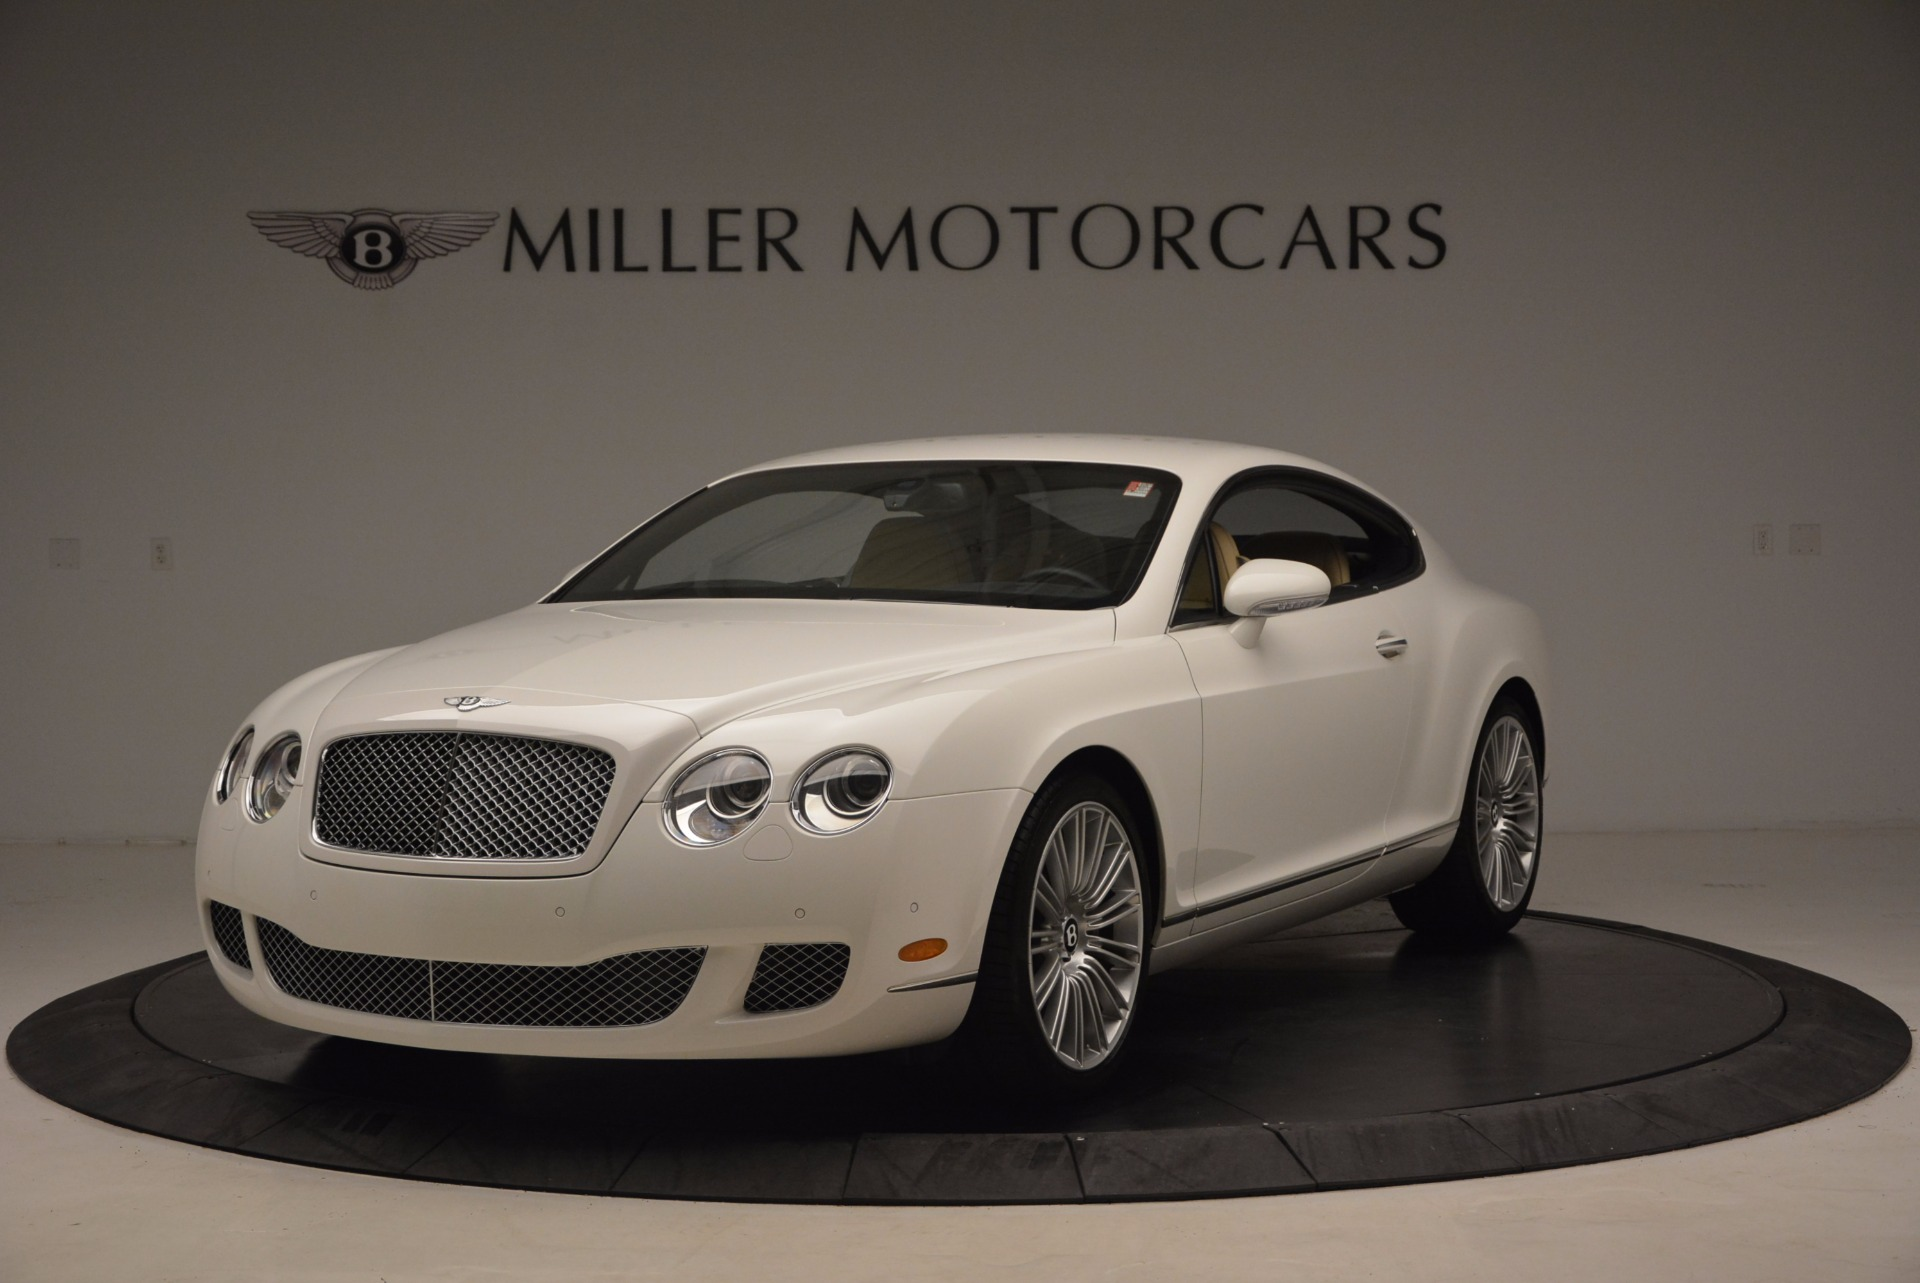 Used 2008 Bentley Continental GT Speed for sale Sold at Alfa Romeo of Greenwich in Greenwich CT 06830 1